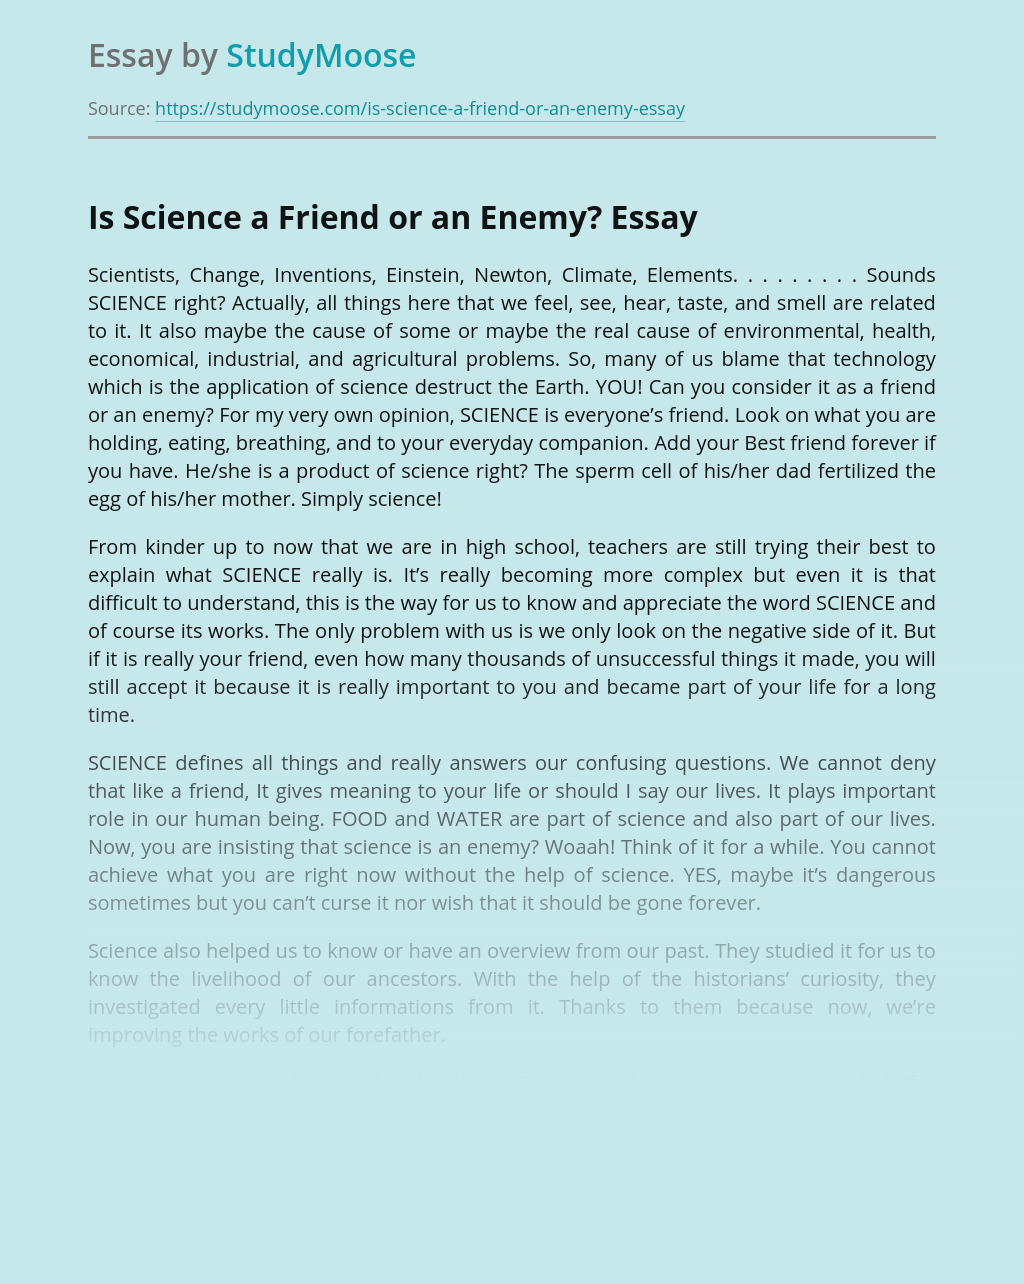 Is Science a Friend or an Enemy?